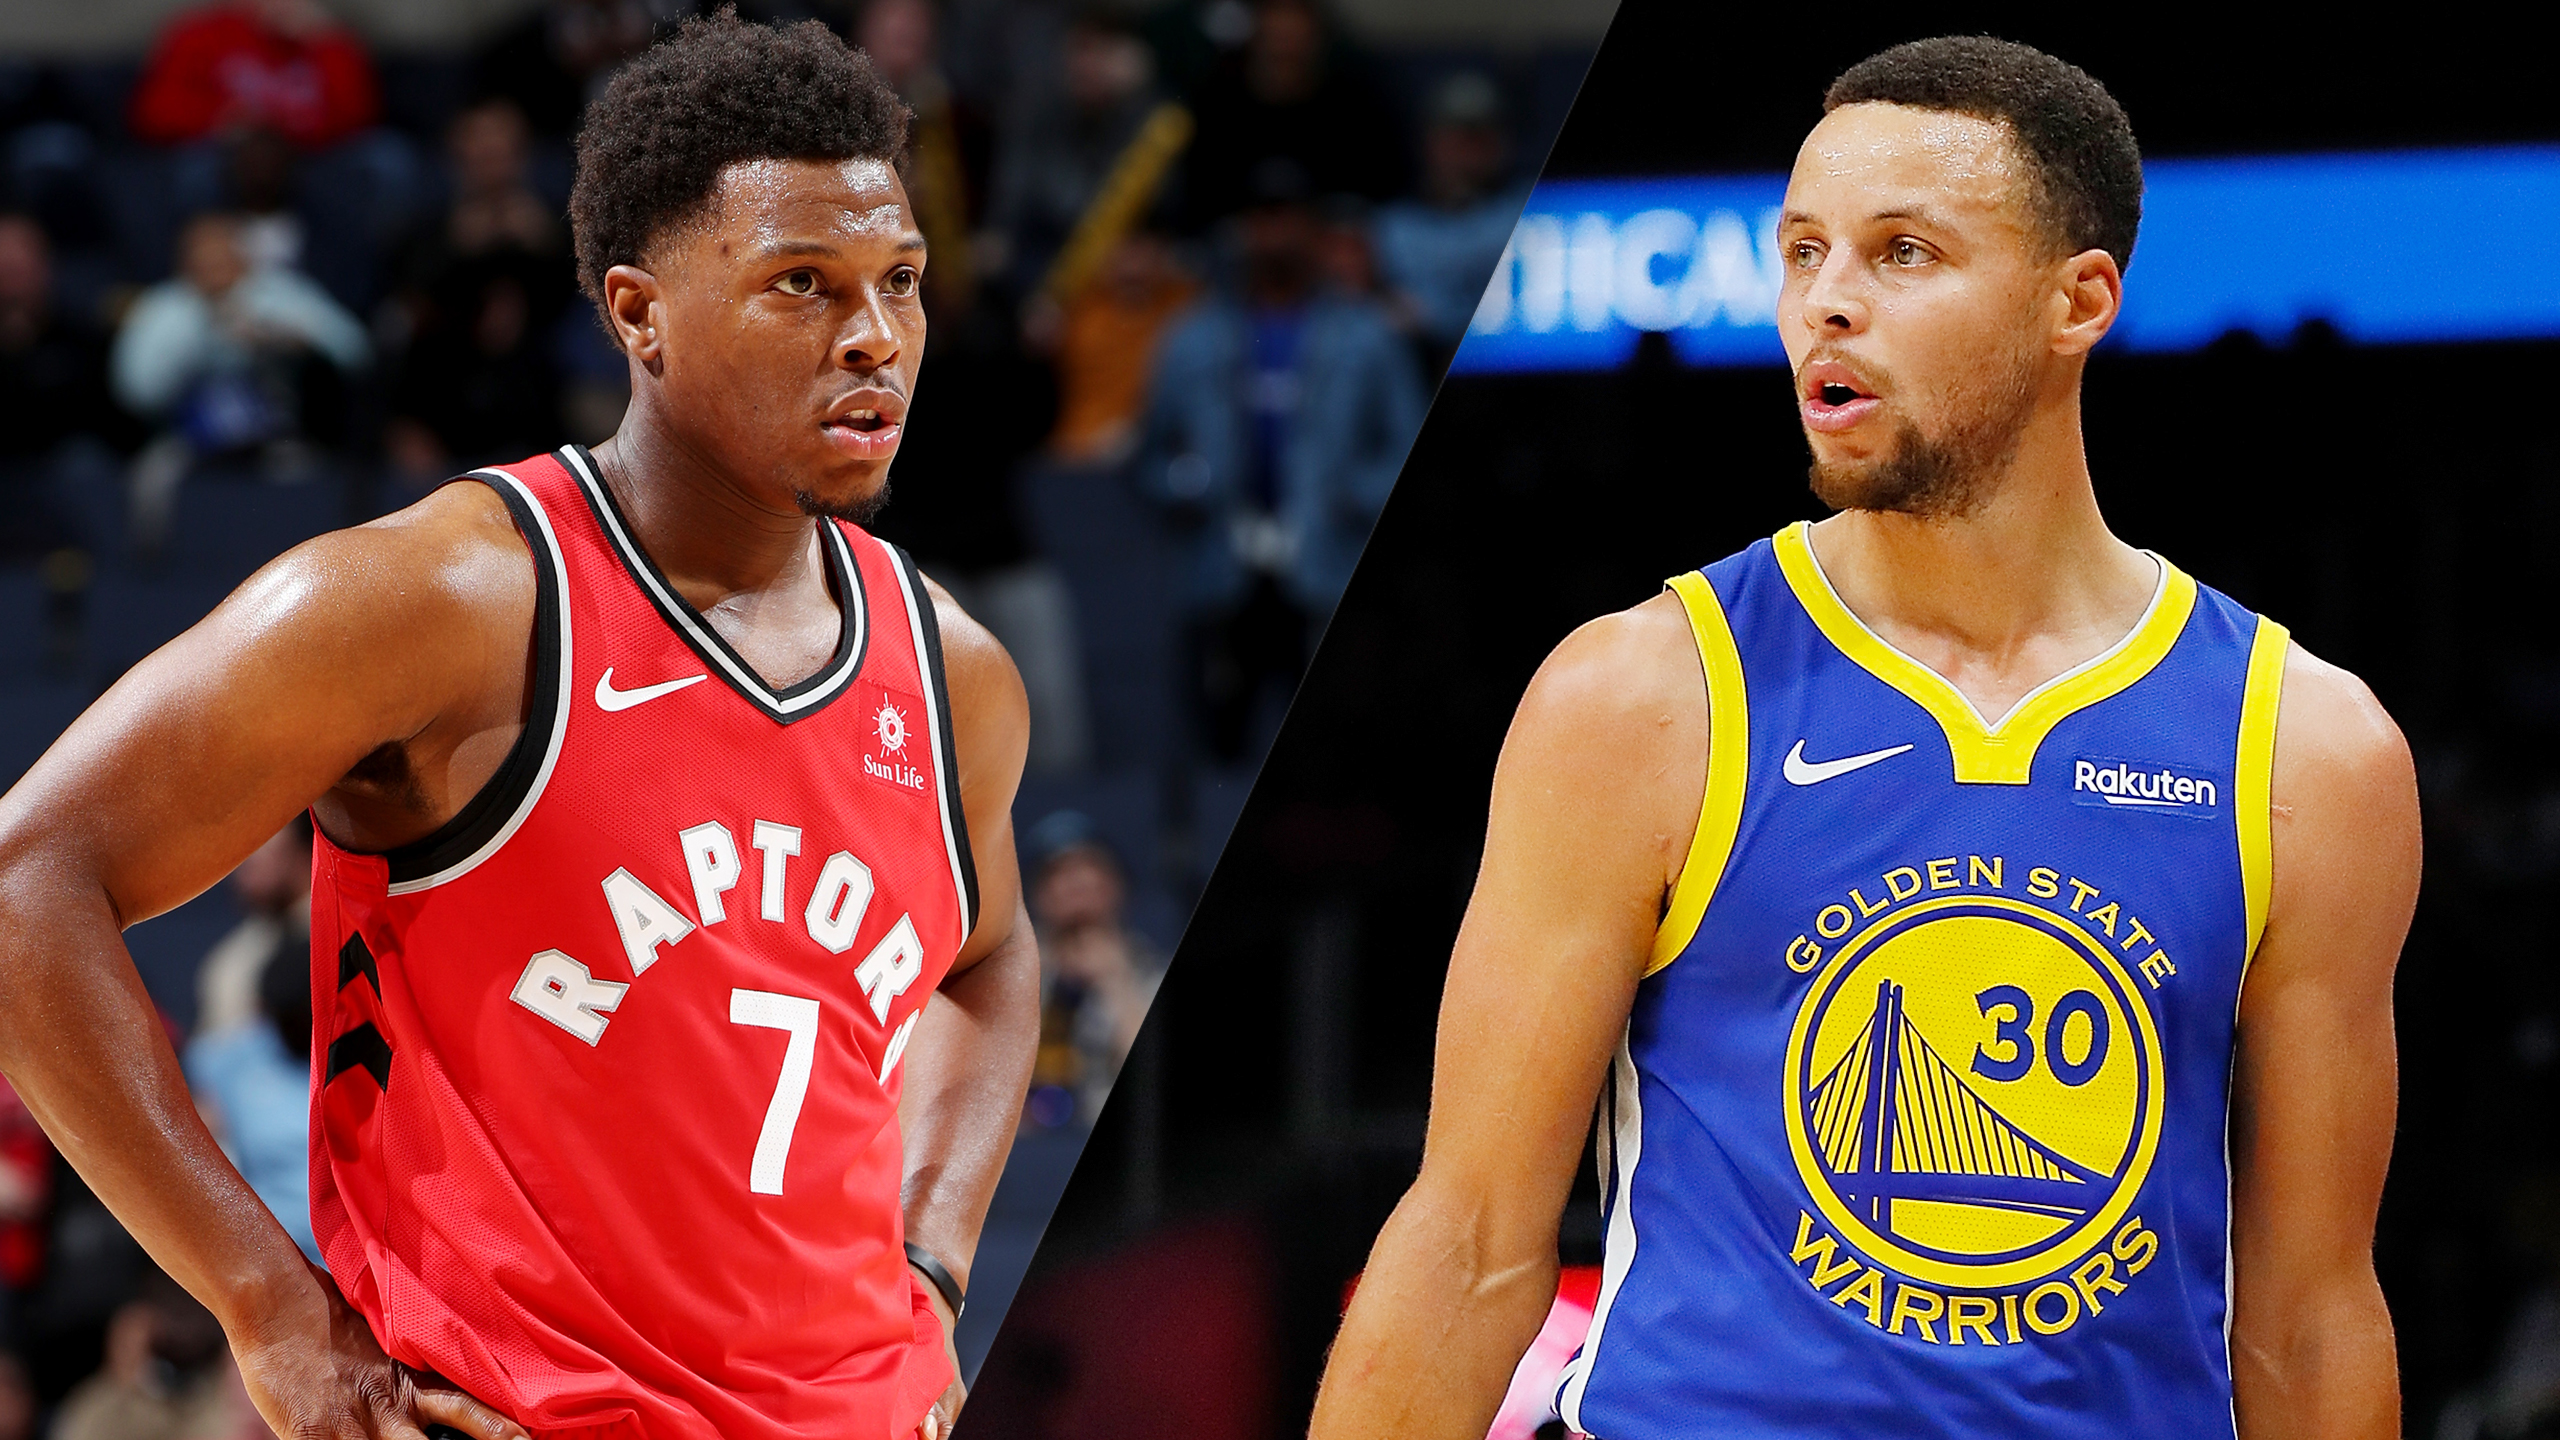 Toronto Raptors vs. Golden State Warriors (re-air)